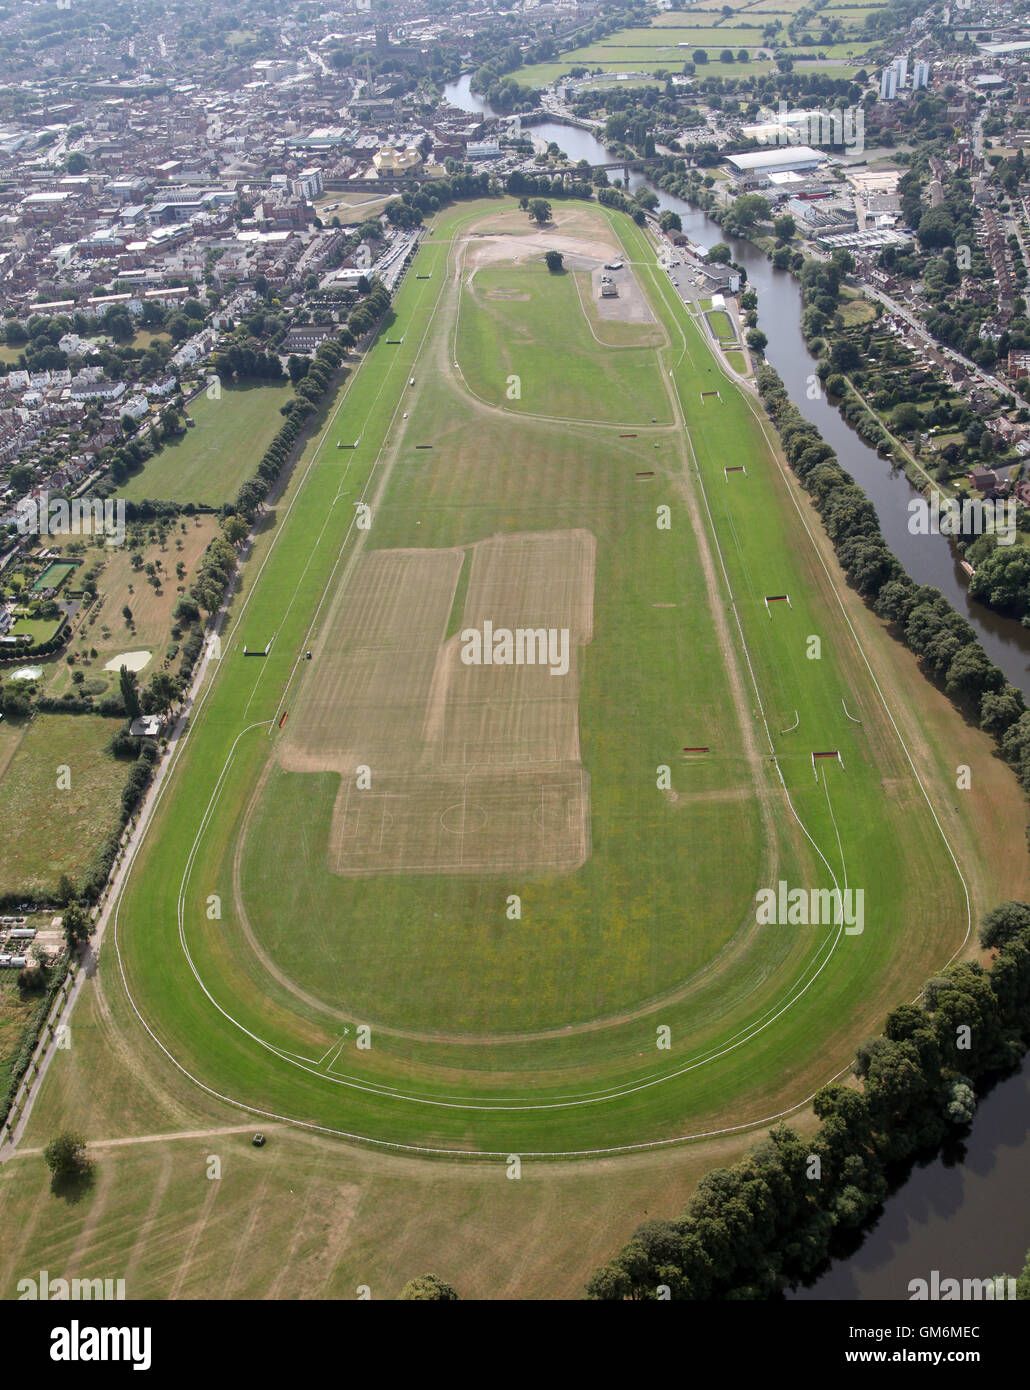 aerial view of Worcester Racecourse horse racing circuit, UK - Stock Image